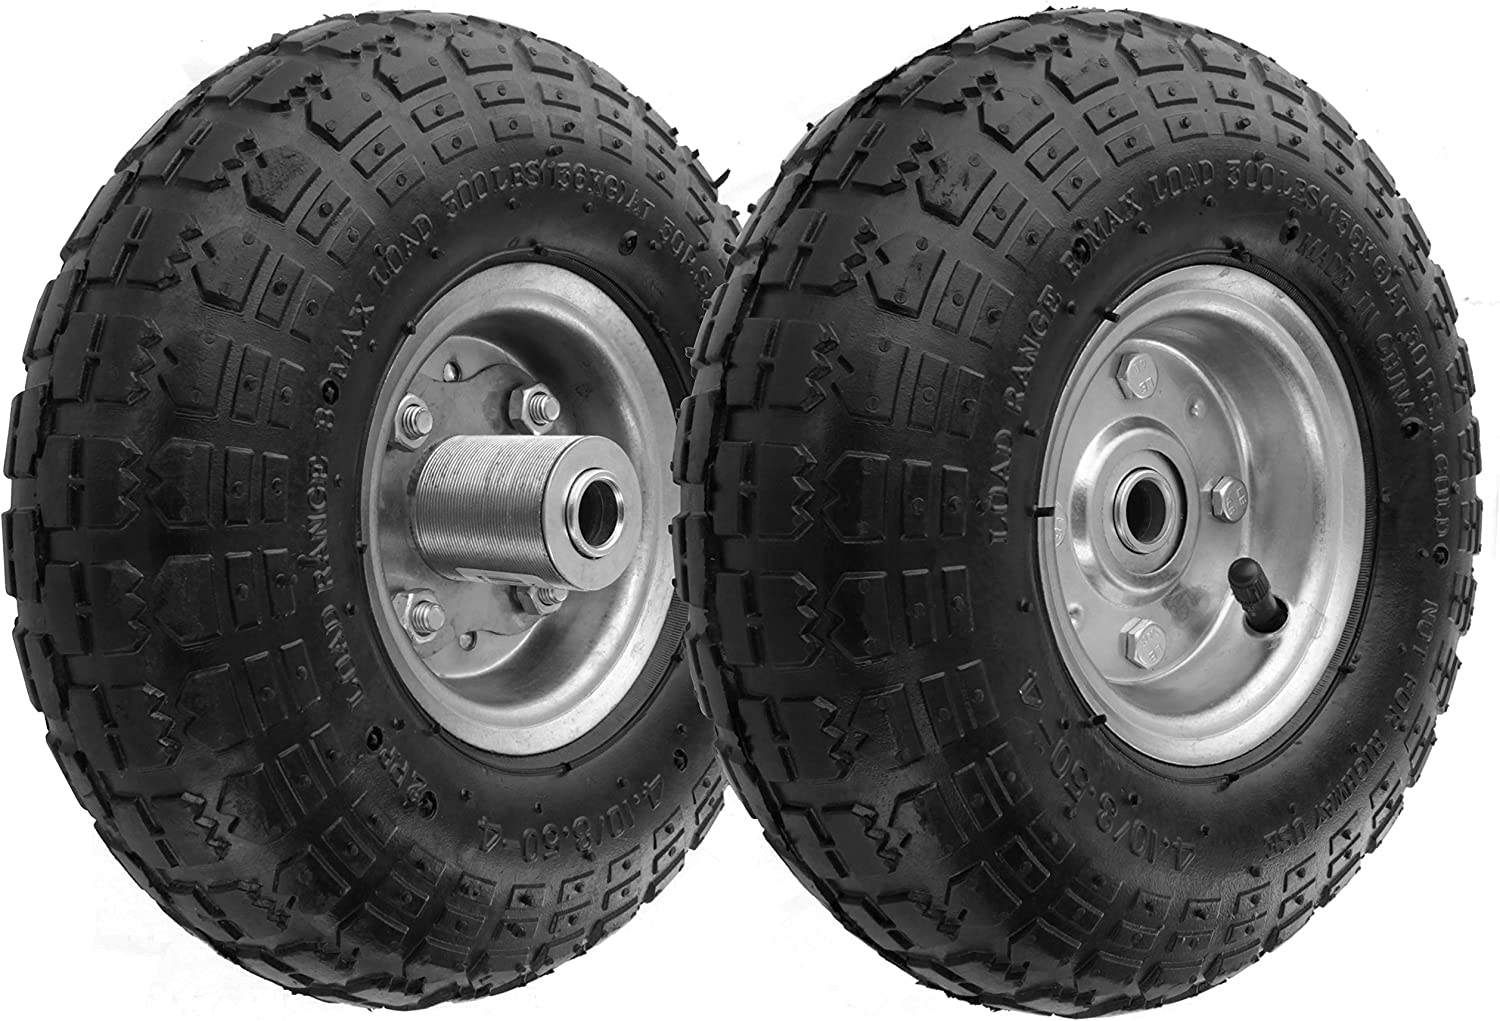 RamPro All-Purpose Utility Wheels - Best For Install